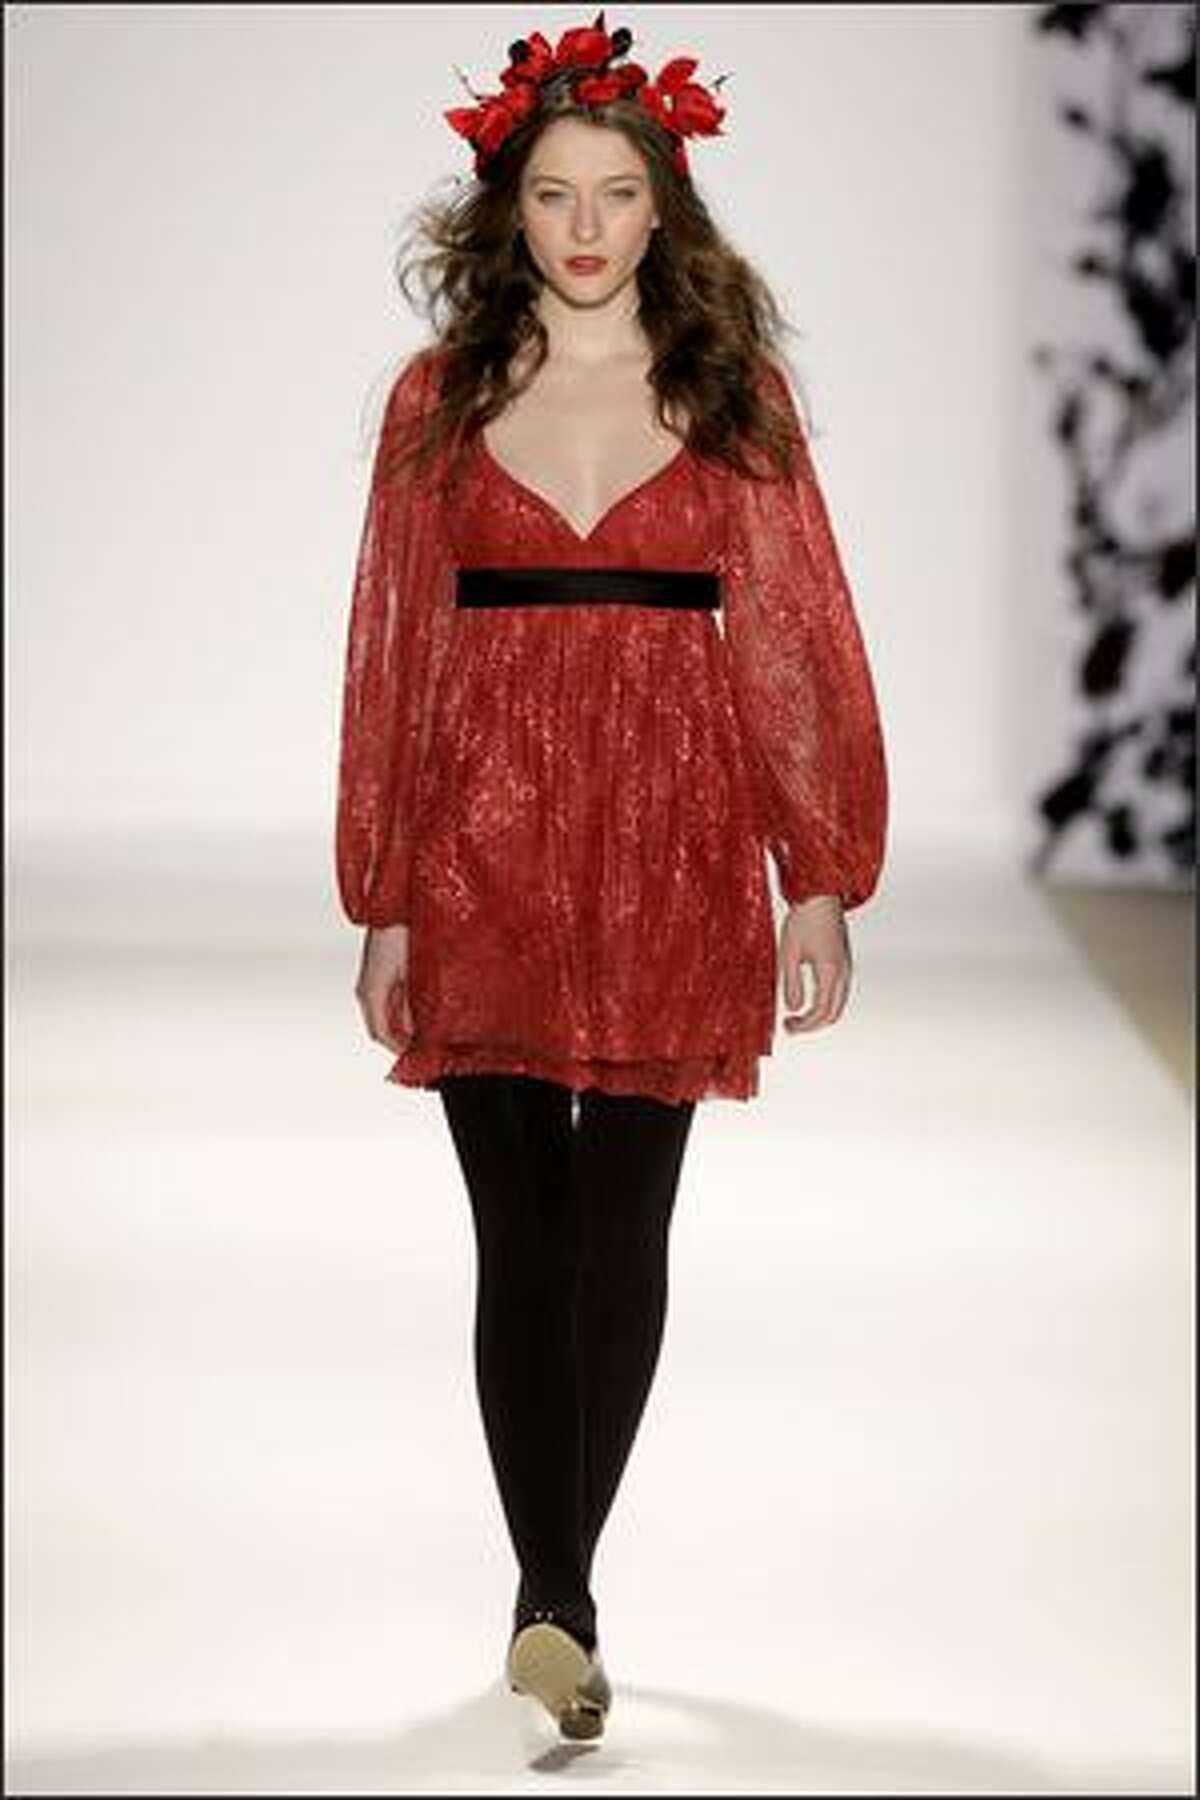 A model walks the runway at the Erin Fetherston fall 2008 fashion show during Mercedes-Benz Fashion Week at The Promenade at Bryant Park in New York.